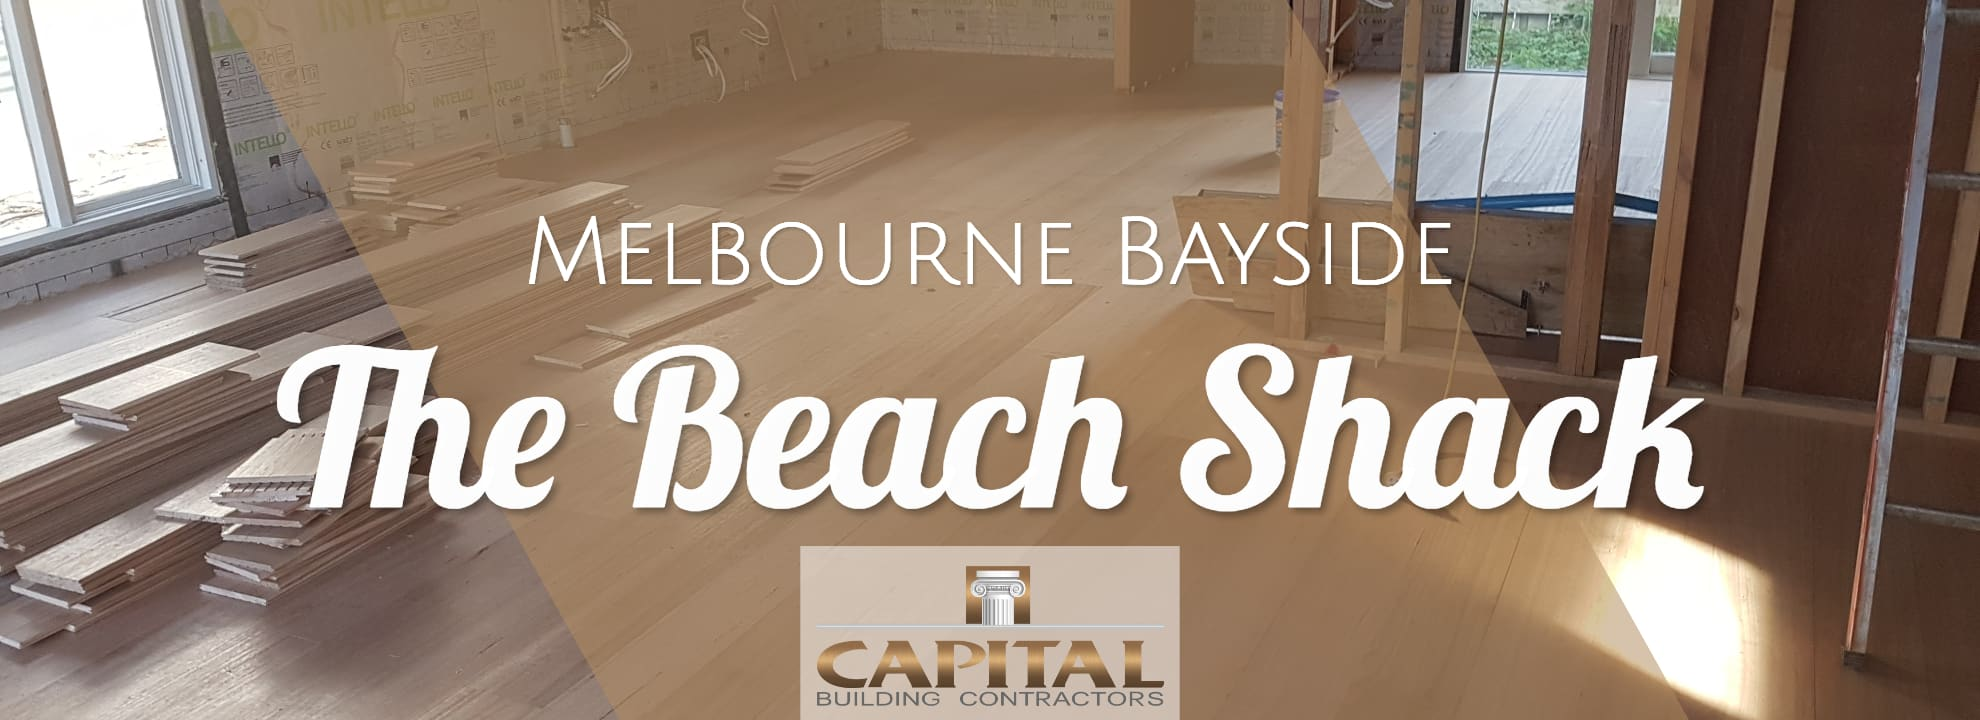 The Beach Shack Bayside Melbourne Builder